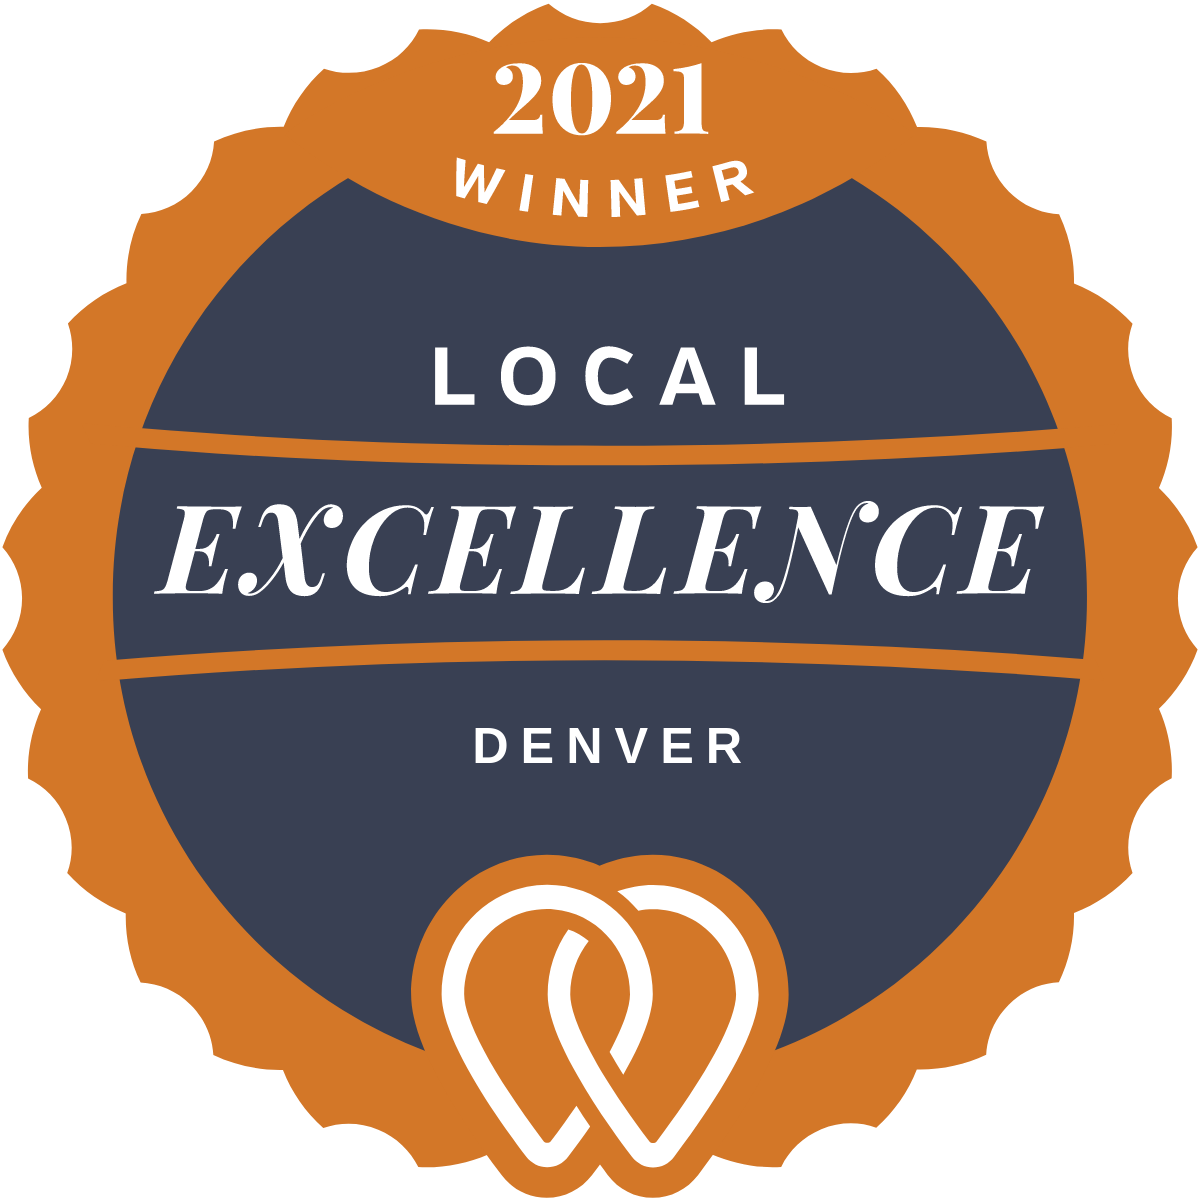 2021 Local Excellence Winner in Denver, CO